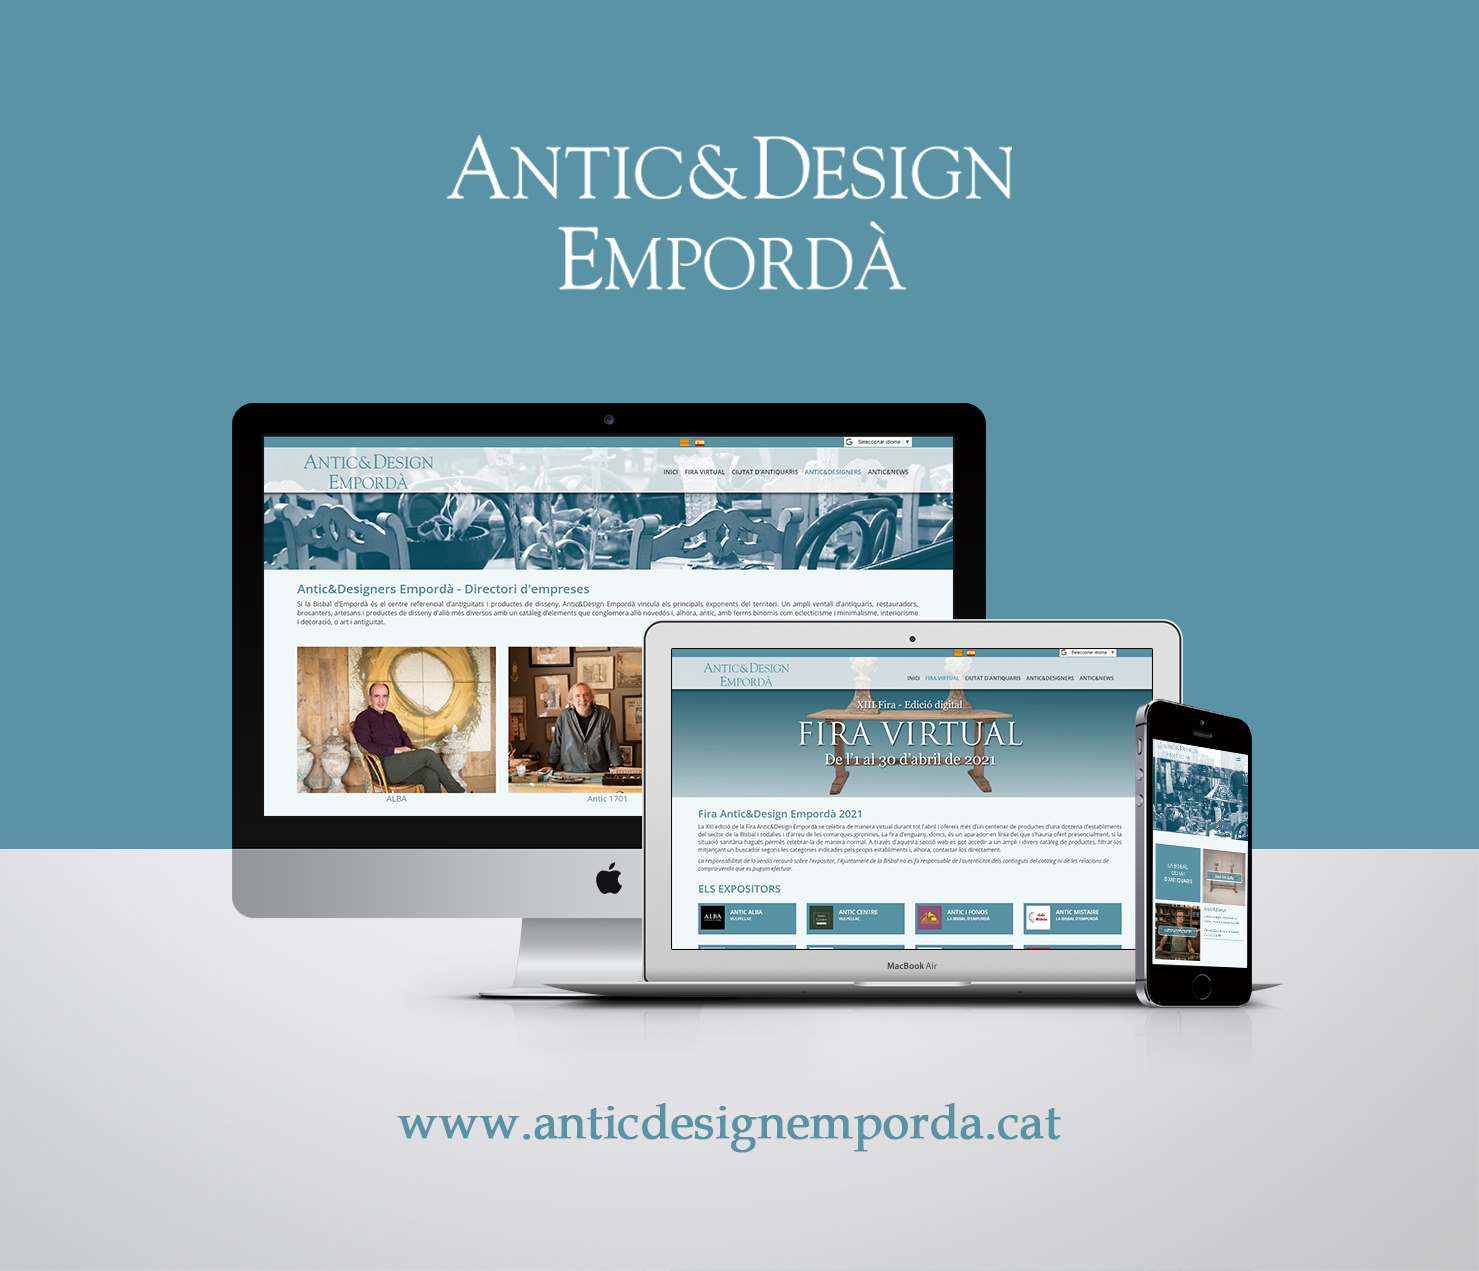 antic&design